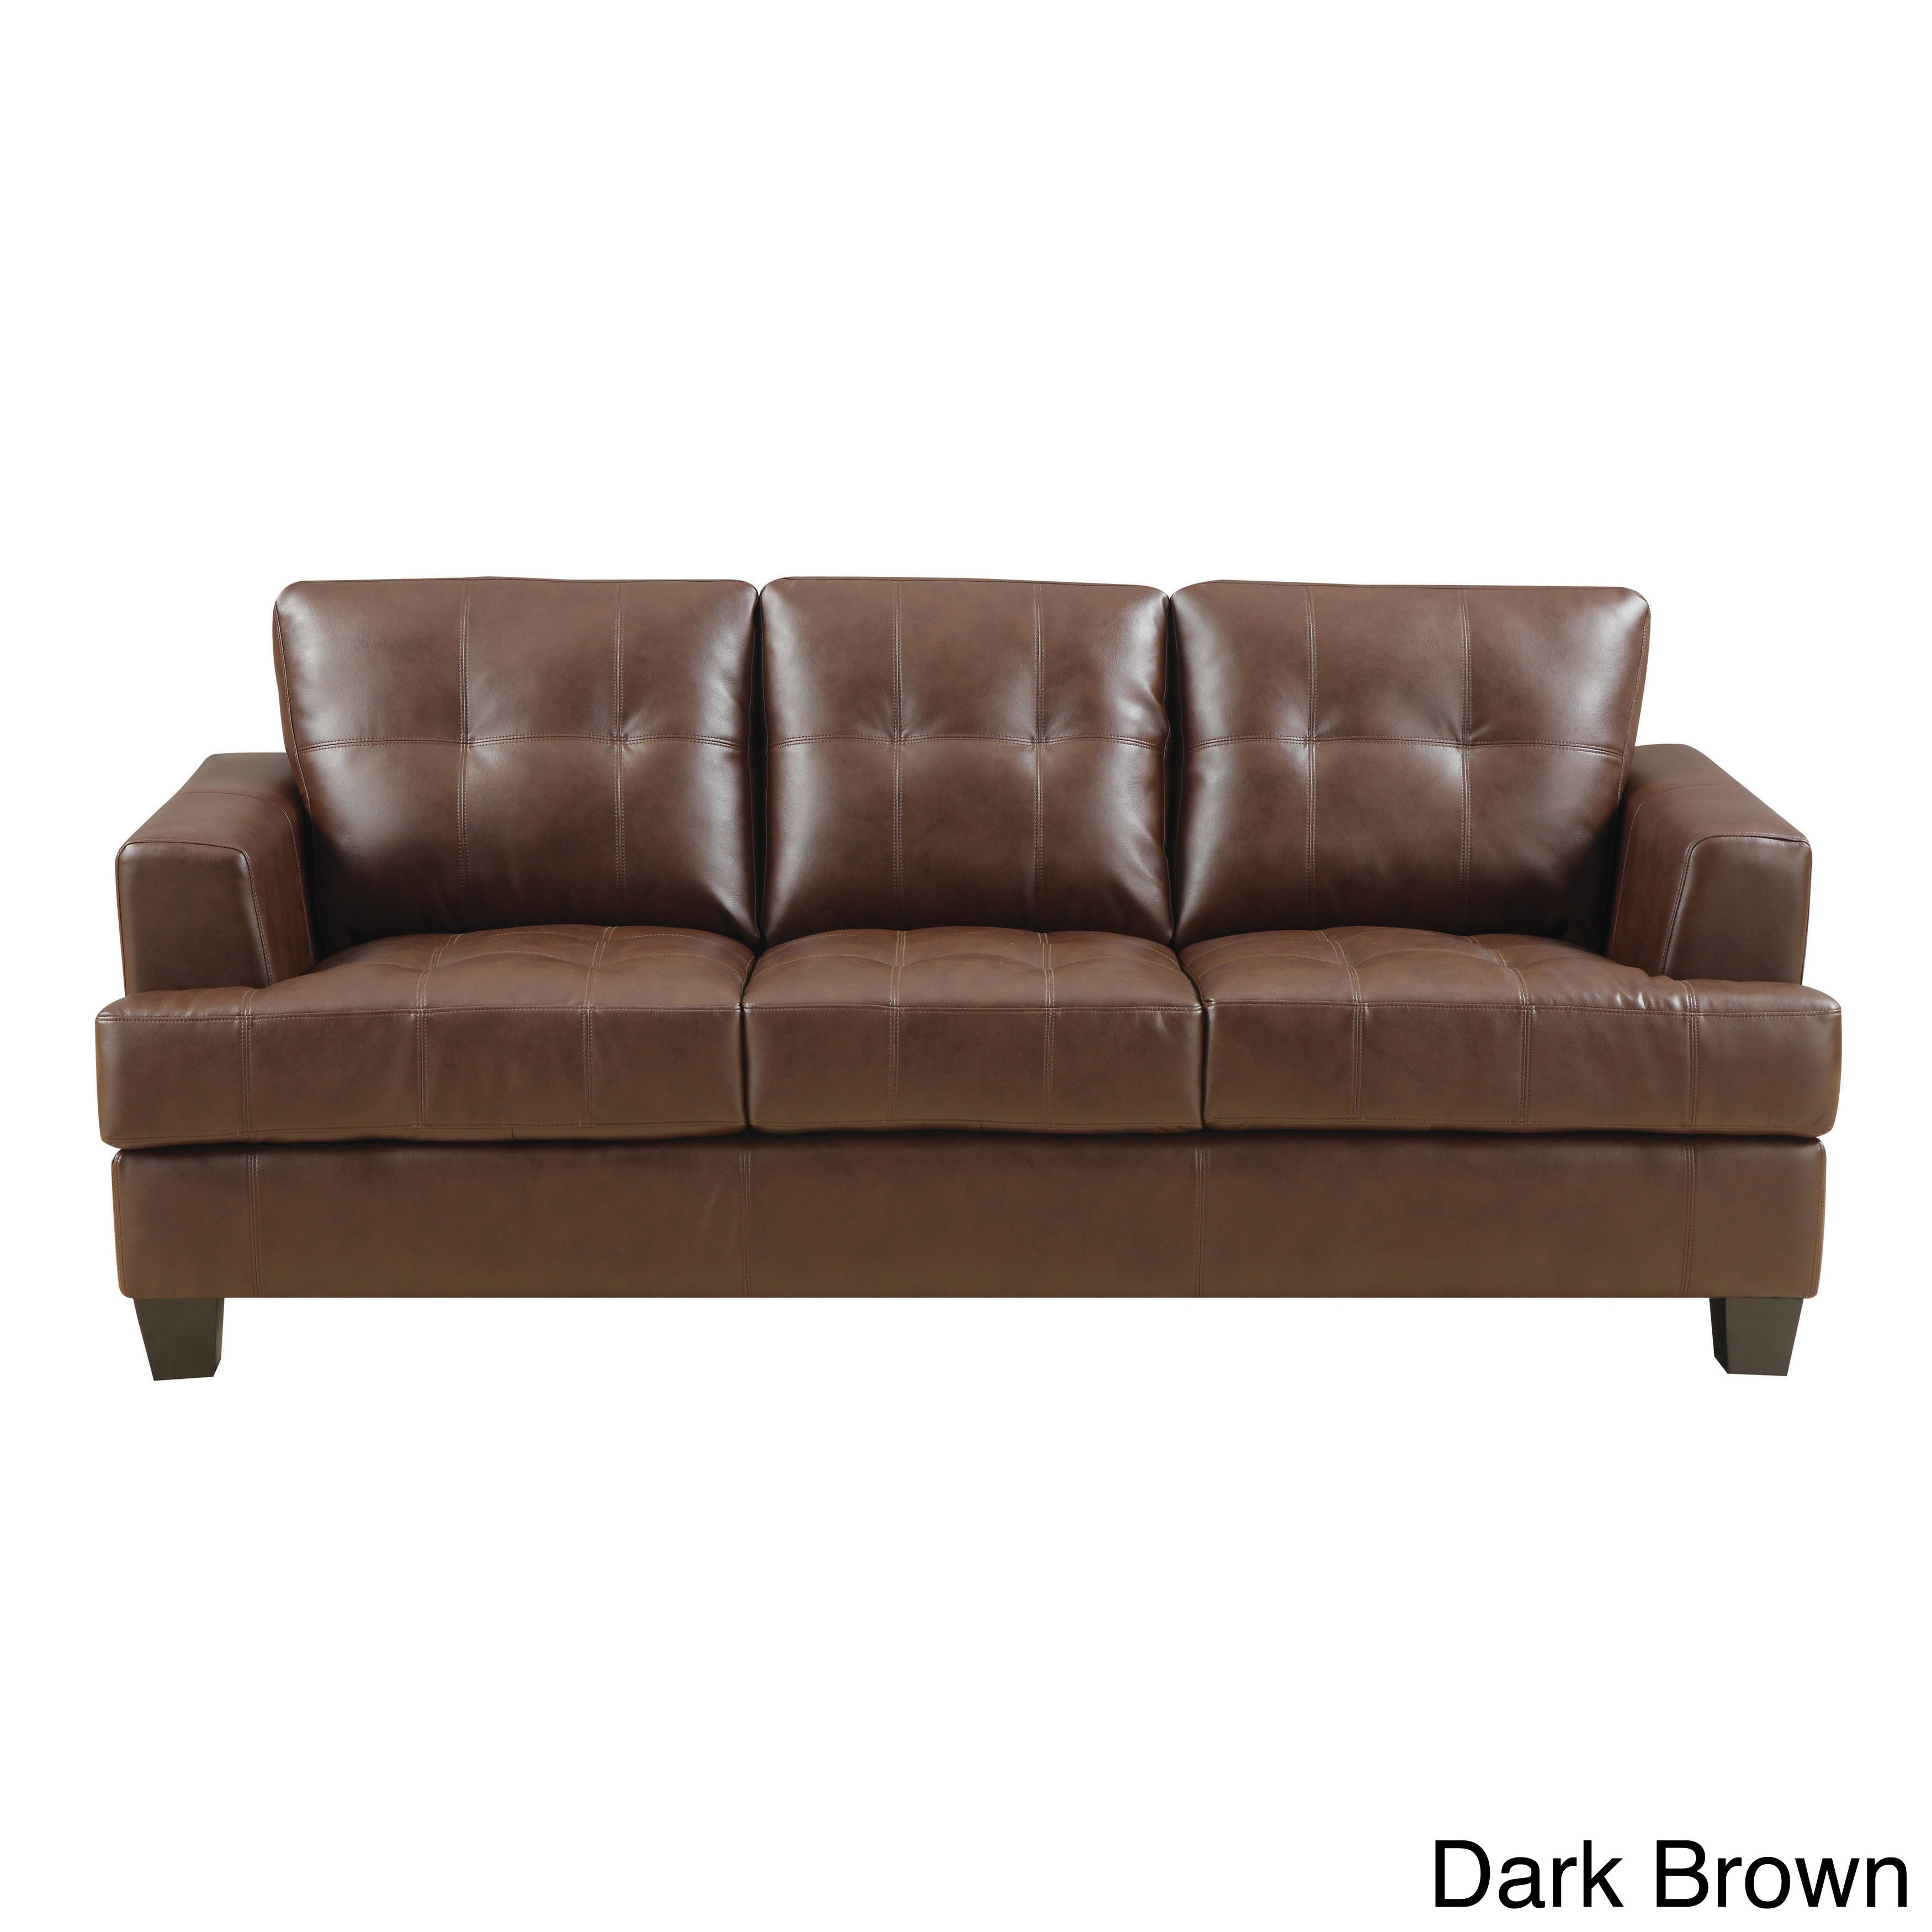 Sofa bonded leather lovable bonded leather sofa for Coaster co of america furniture